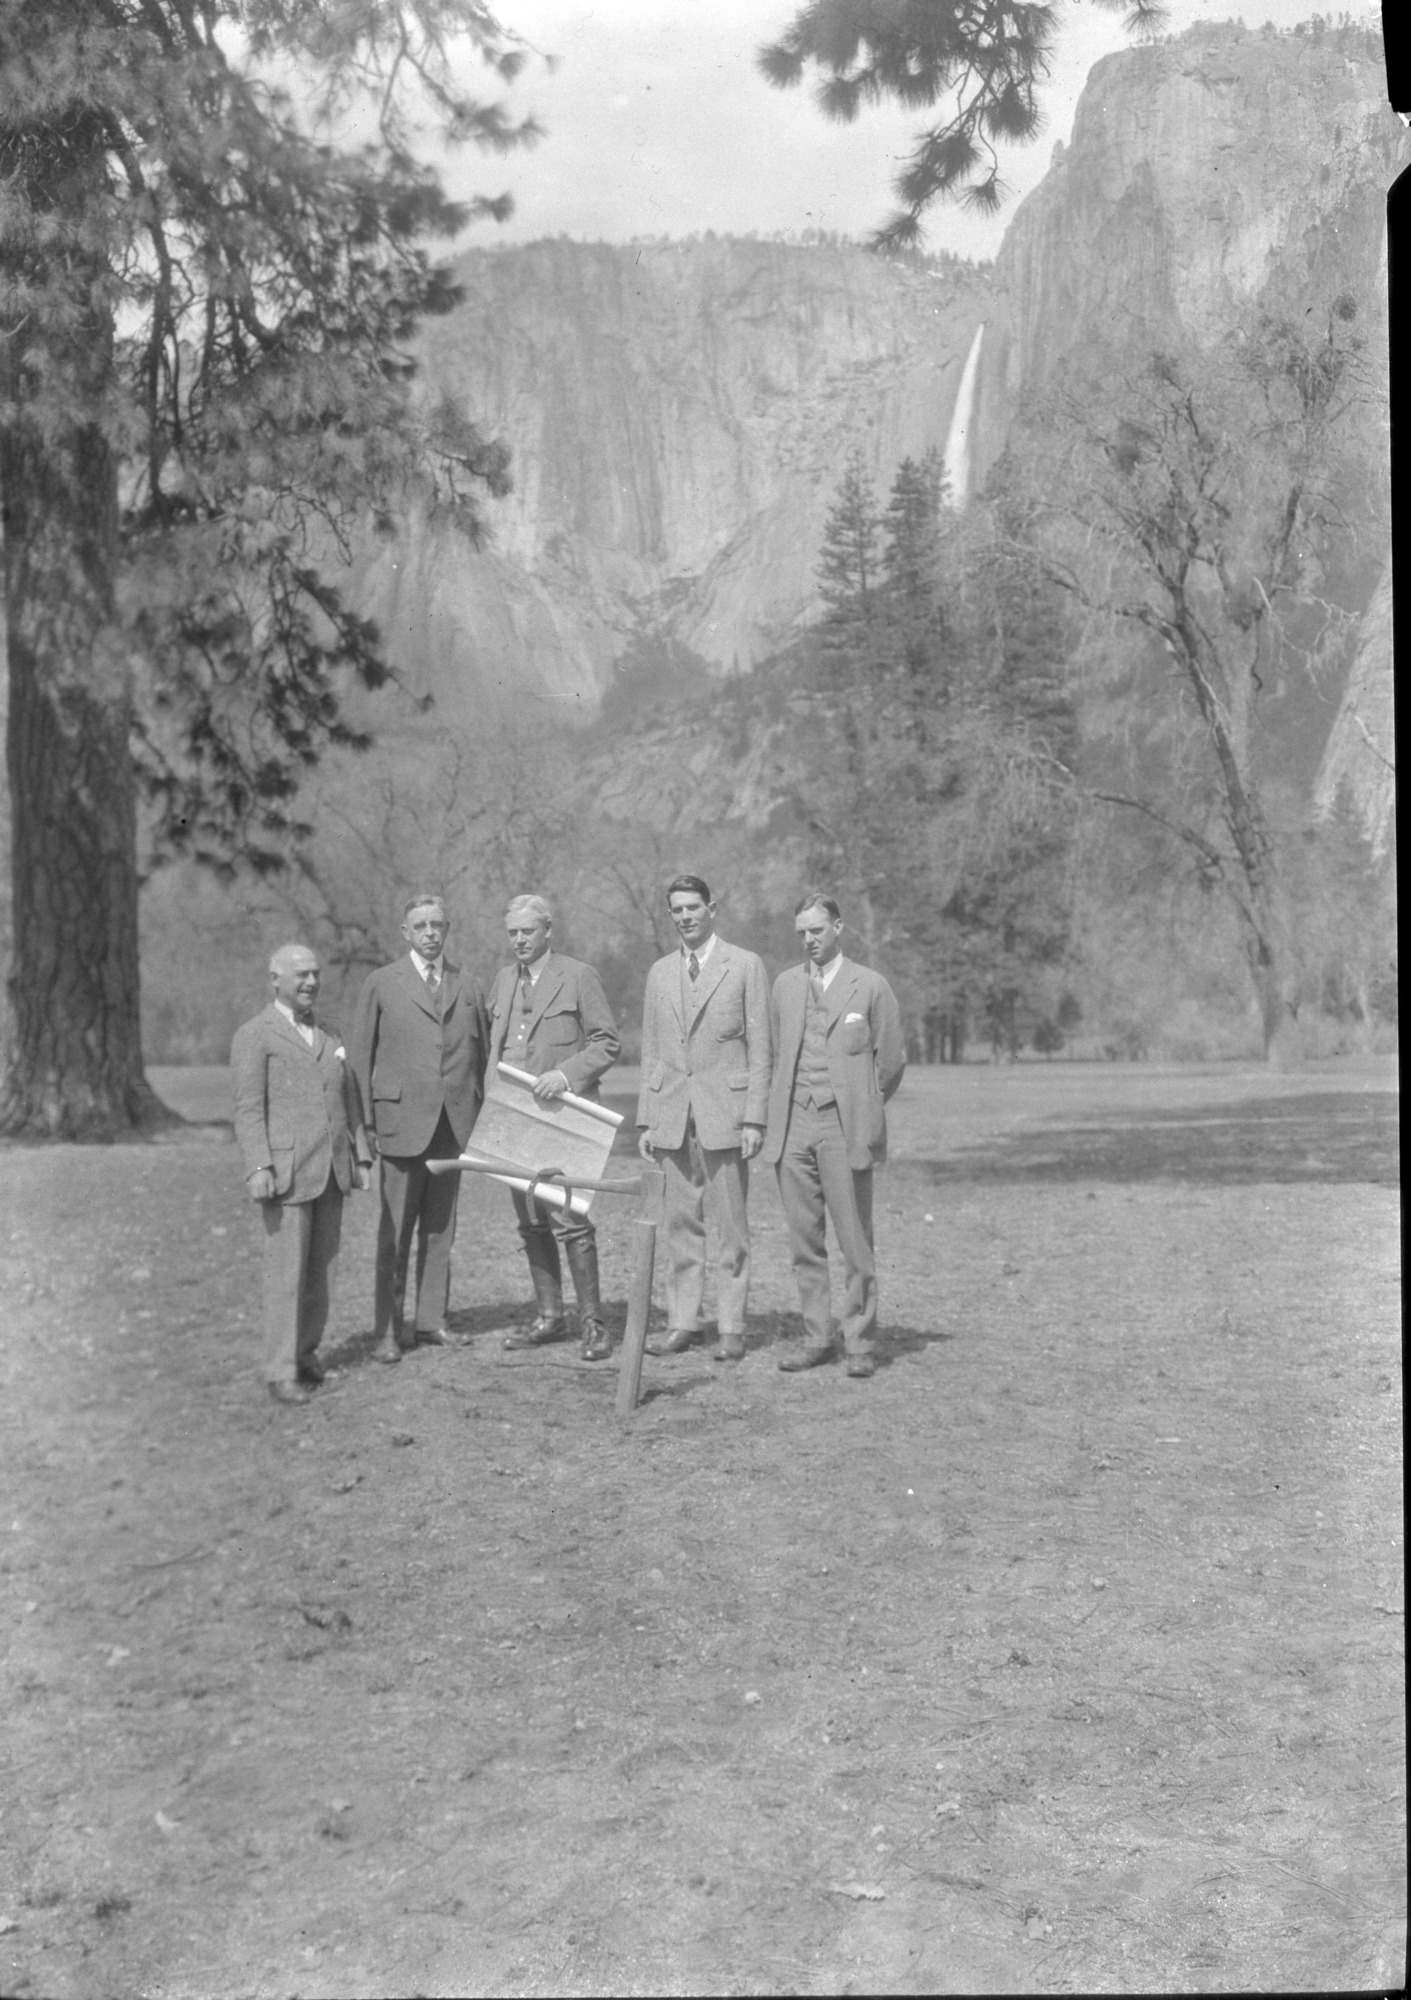 At site of future Ahwahnee Hotel: L-R: 1.? 2. Secty of Interior Hubert Work. 3. NPS Dir. Stephen T. Mather, 4. Donald Tresidder, 5. Bob Williams